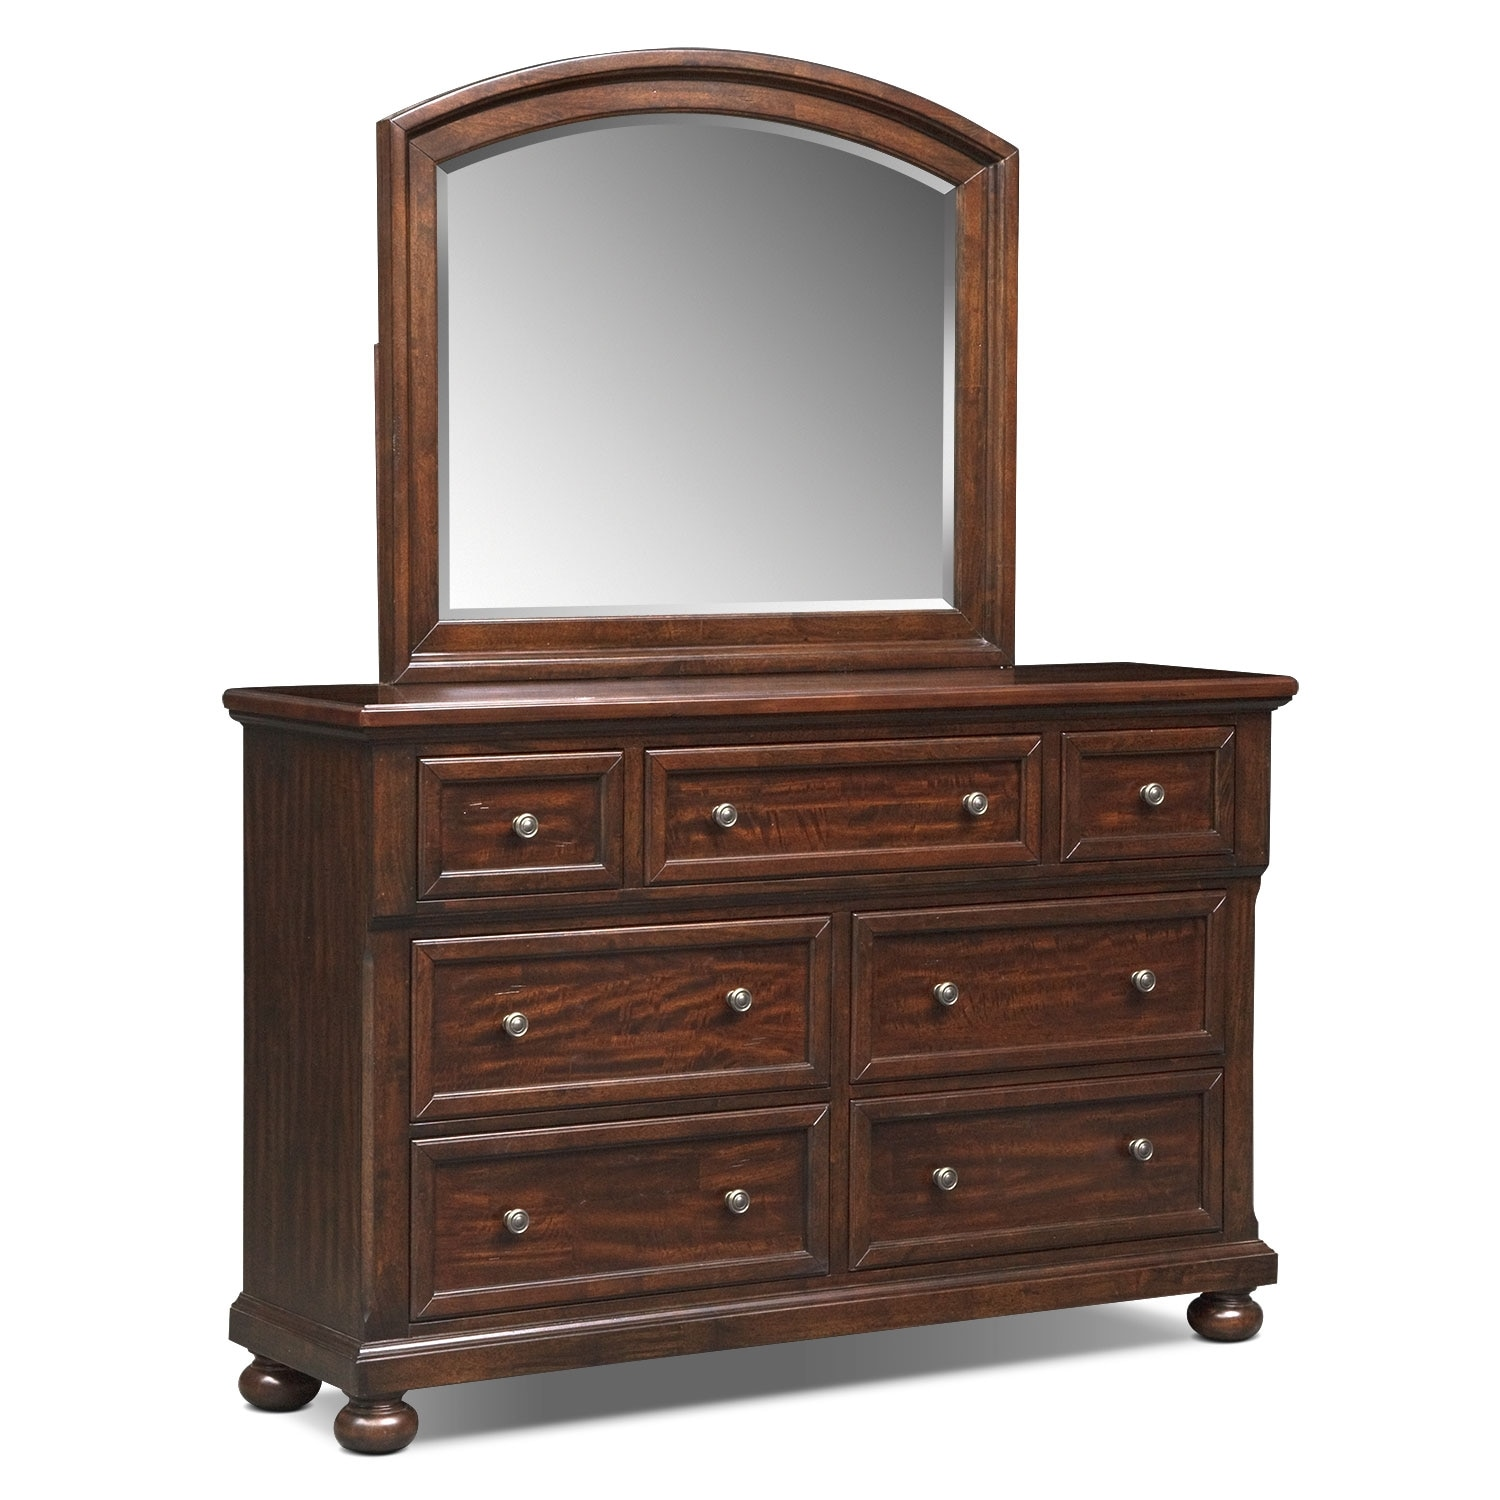 Hanover Dresser and Mirror - Cherry